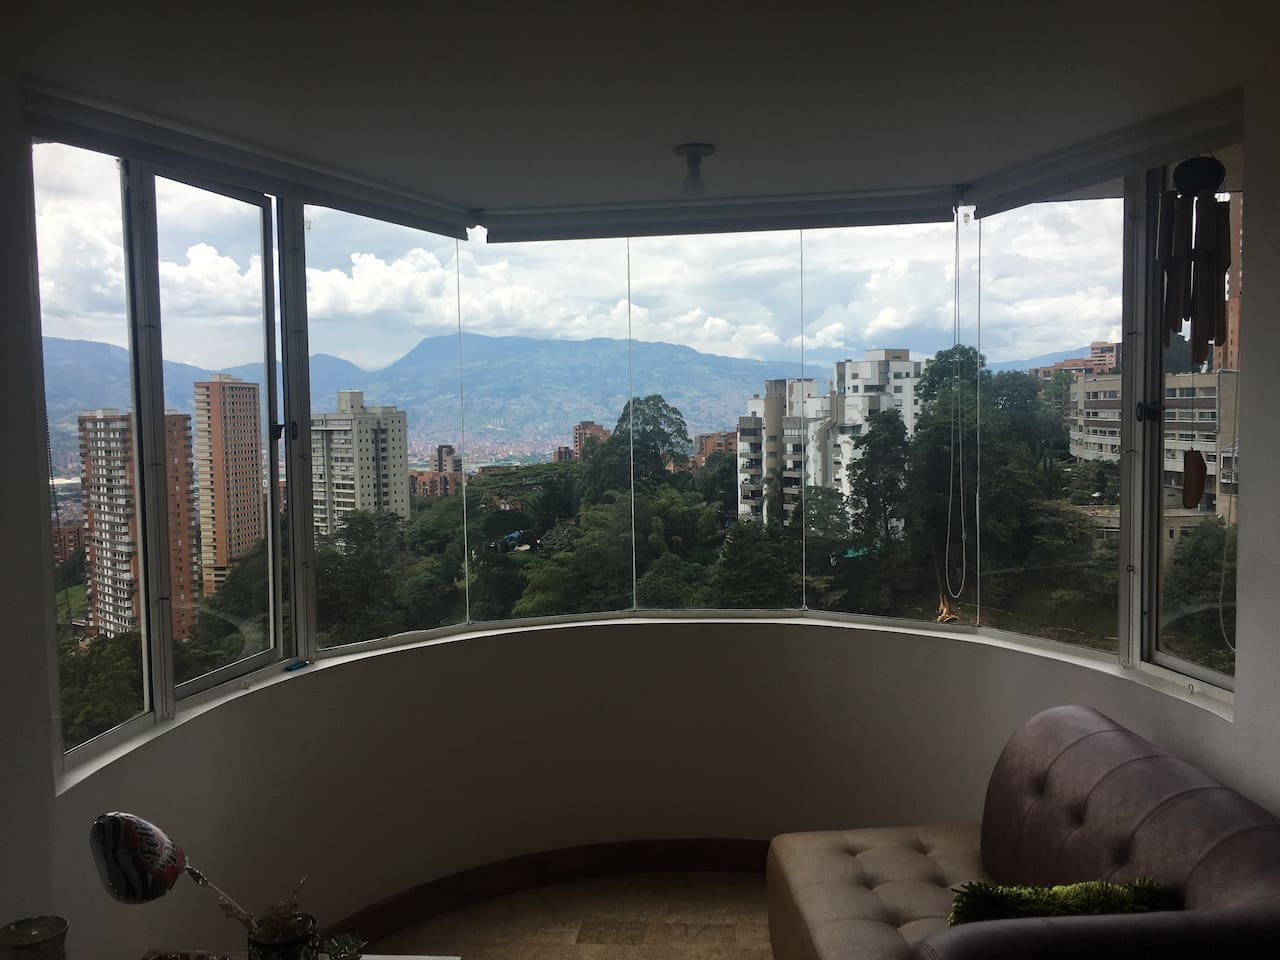 Panoramic view to the city of medellin